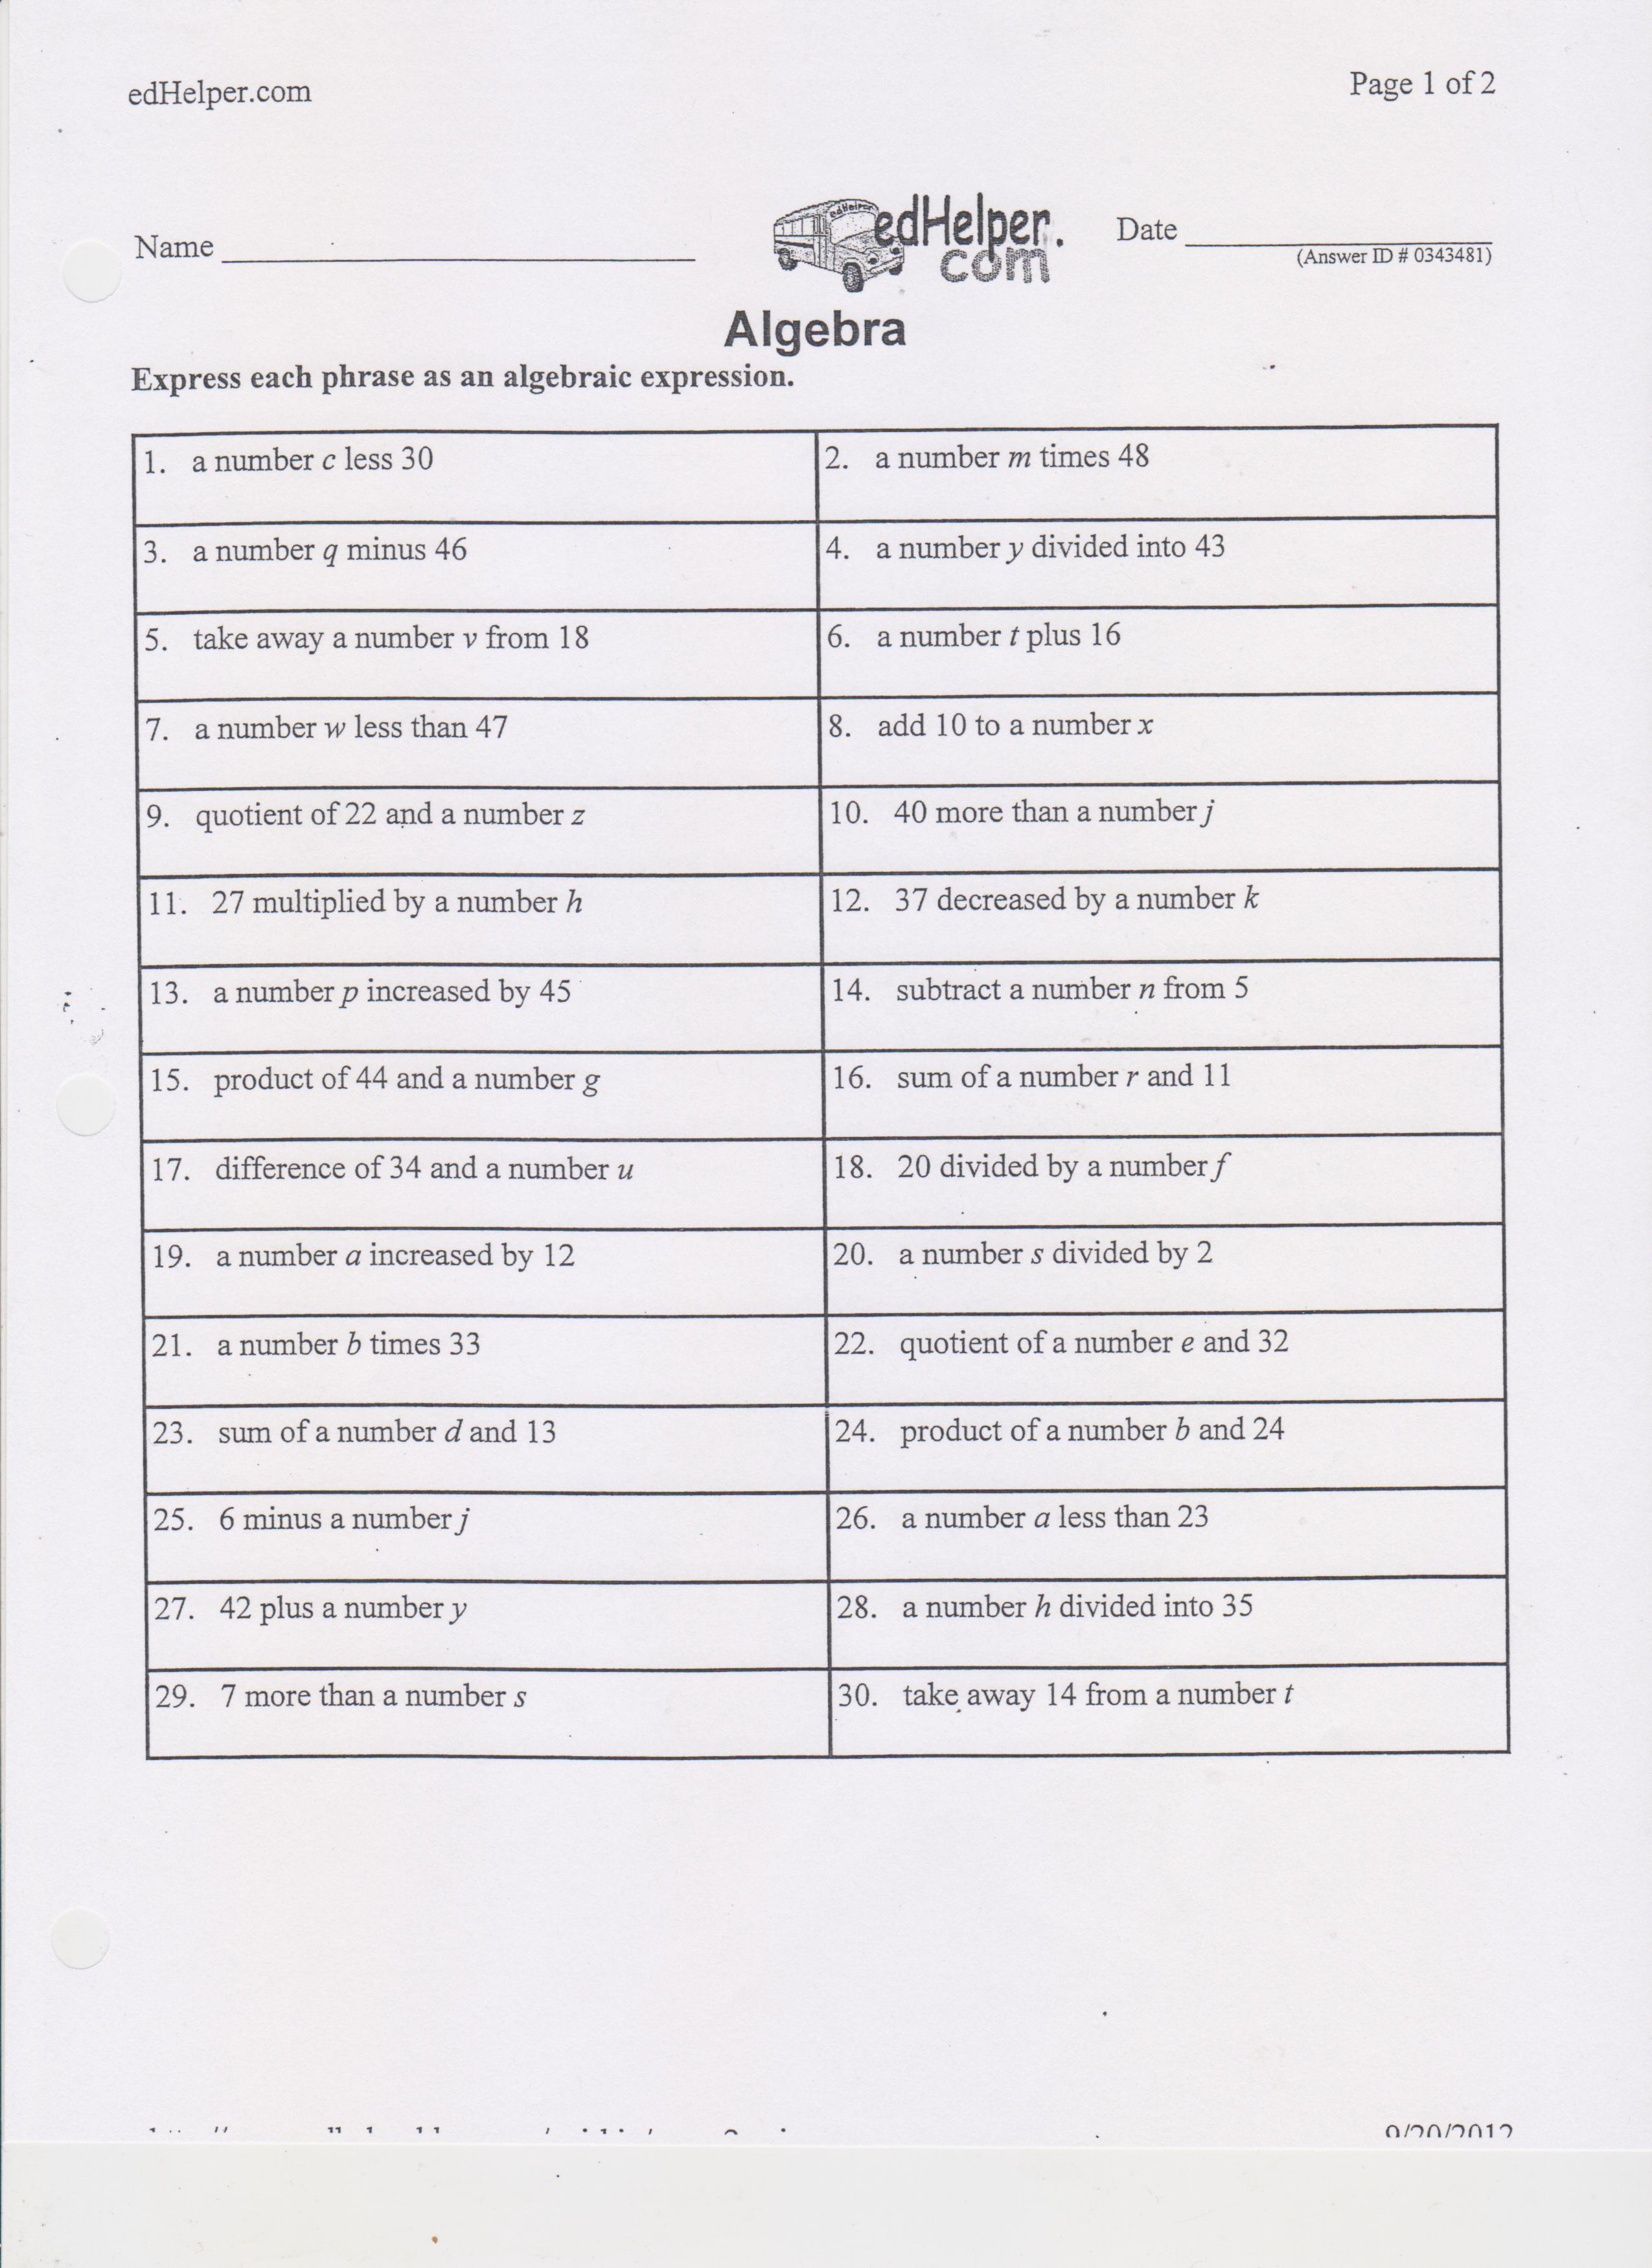 worksheet Translating Words Into Algebraic Expressions Worksheet translating algebraic phrases worksheet abitlikethis a algebra worksheet